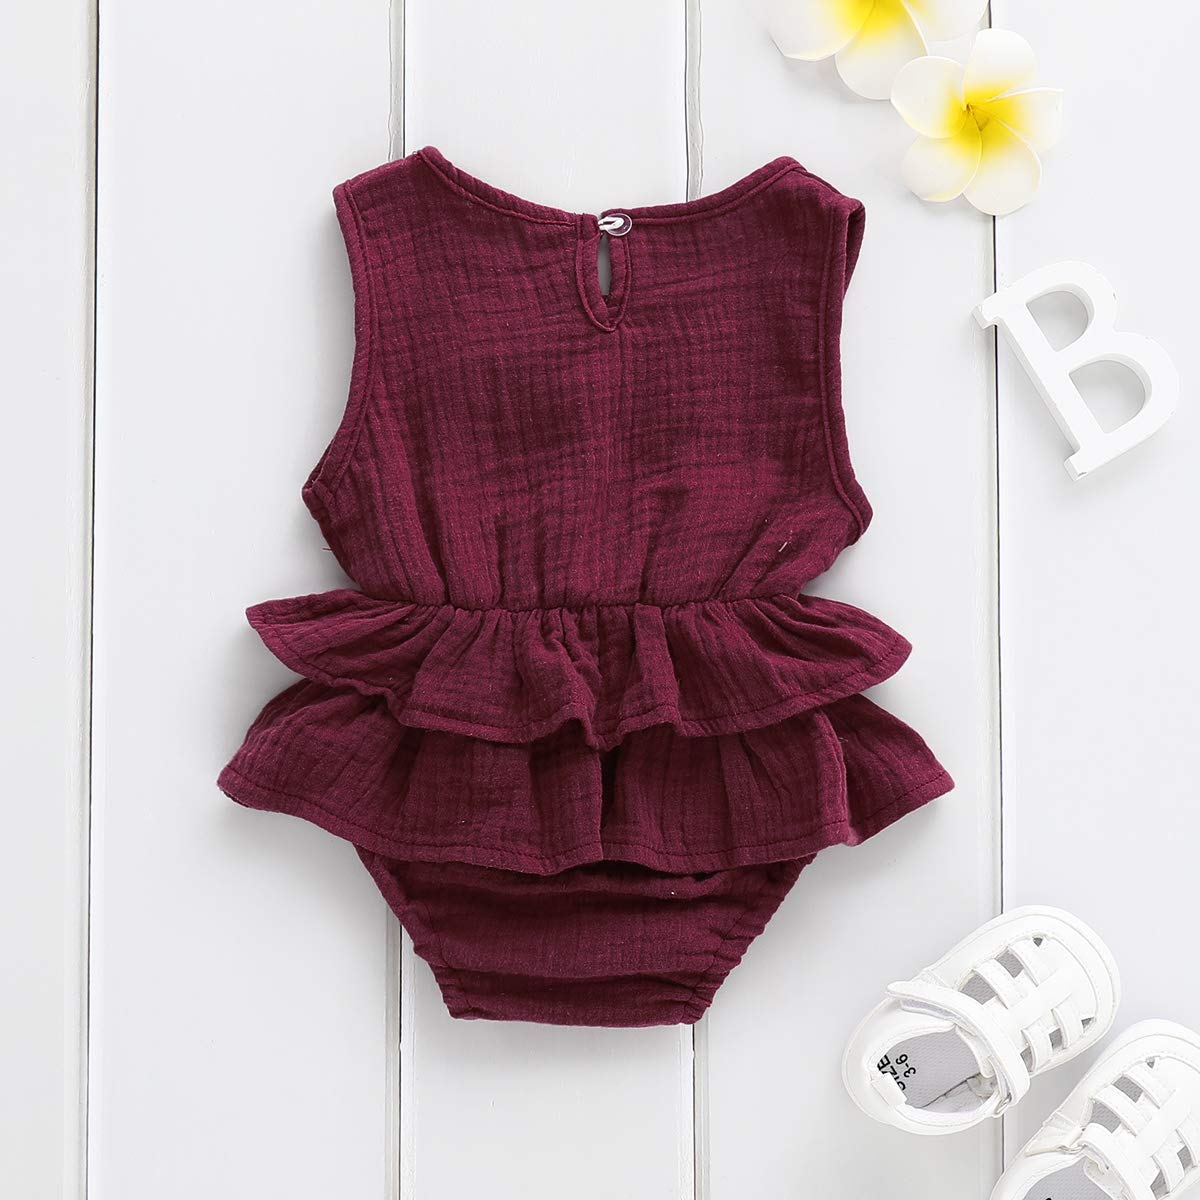 b6a84402539 Amazon.com  Bowanadacles Newborn Baby Girl Romper Jumpsuit Cotton Linen  Sleeveless Ruffled Bodysuit Infant Summer Clothes Outfits  Clothing